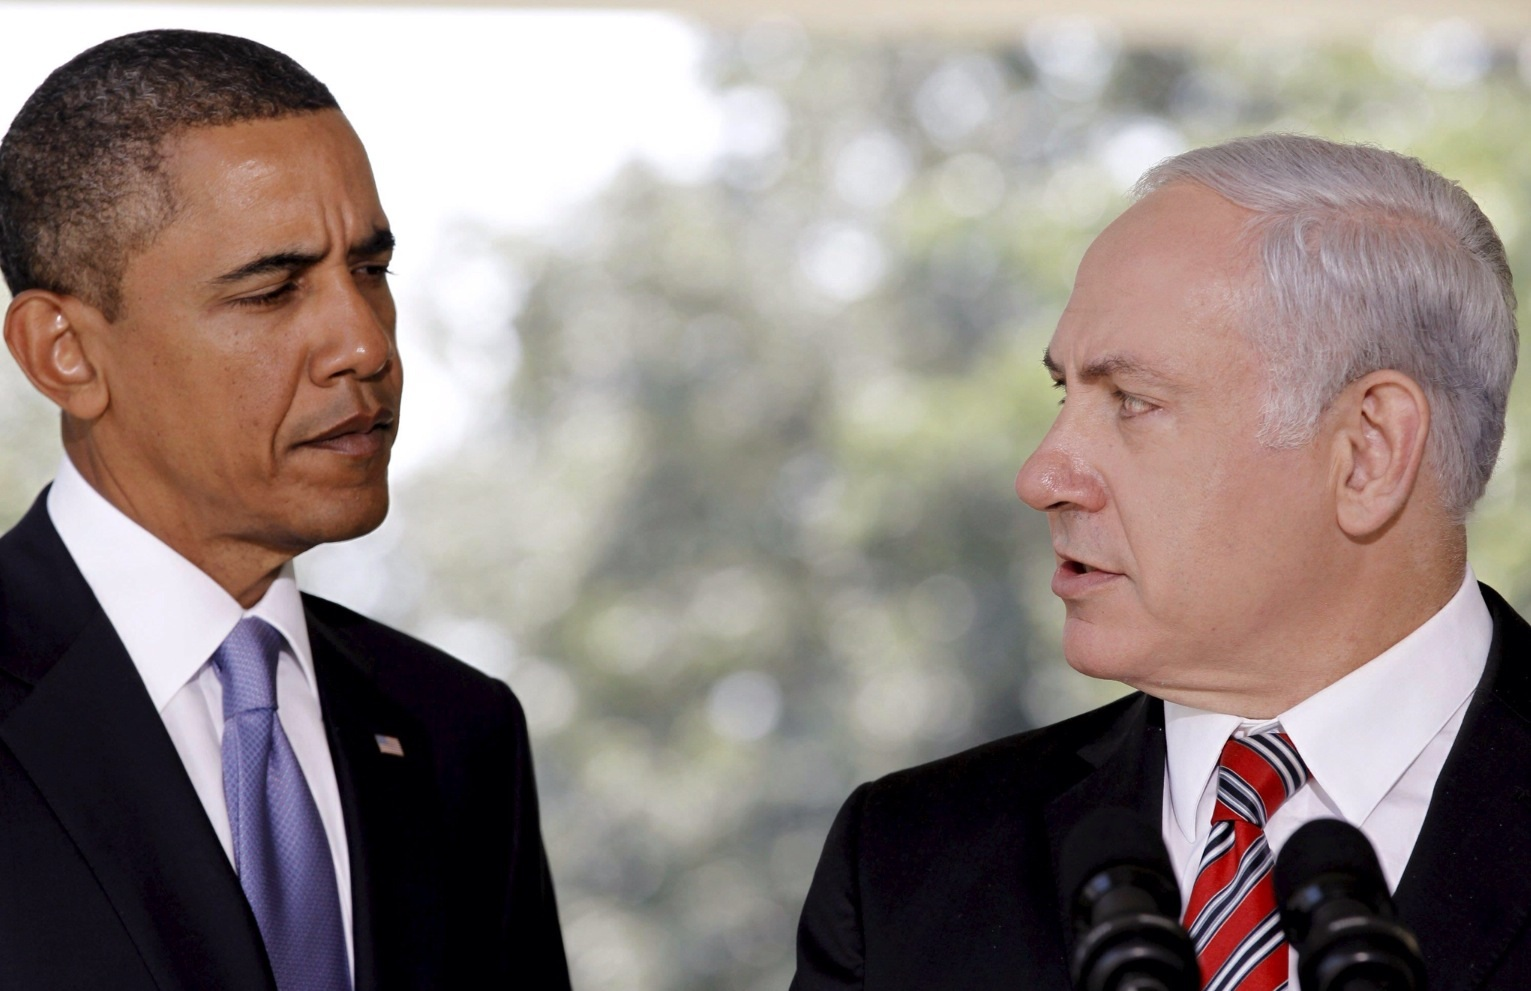 Oakwood Political Scientist to negotiate peace between Obama and Netanyahu